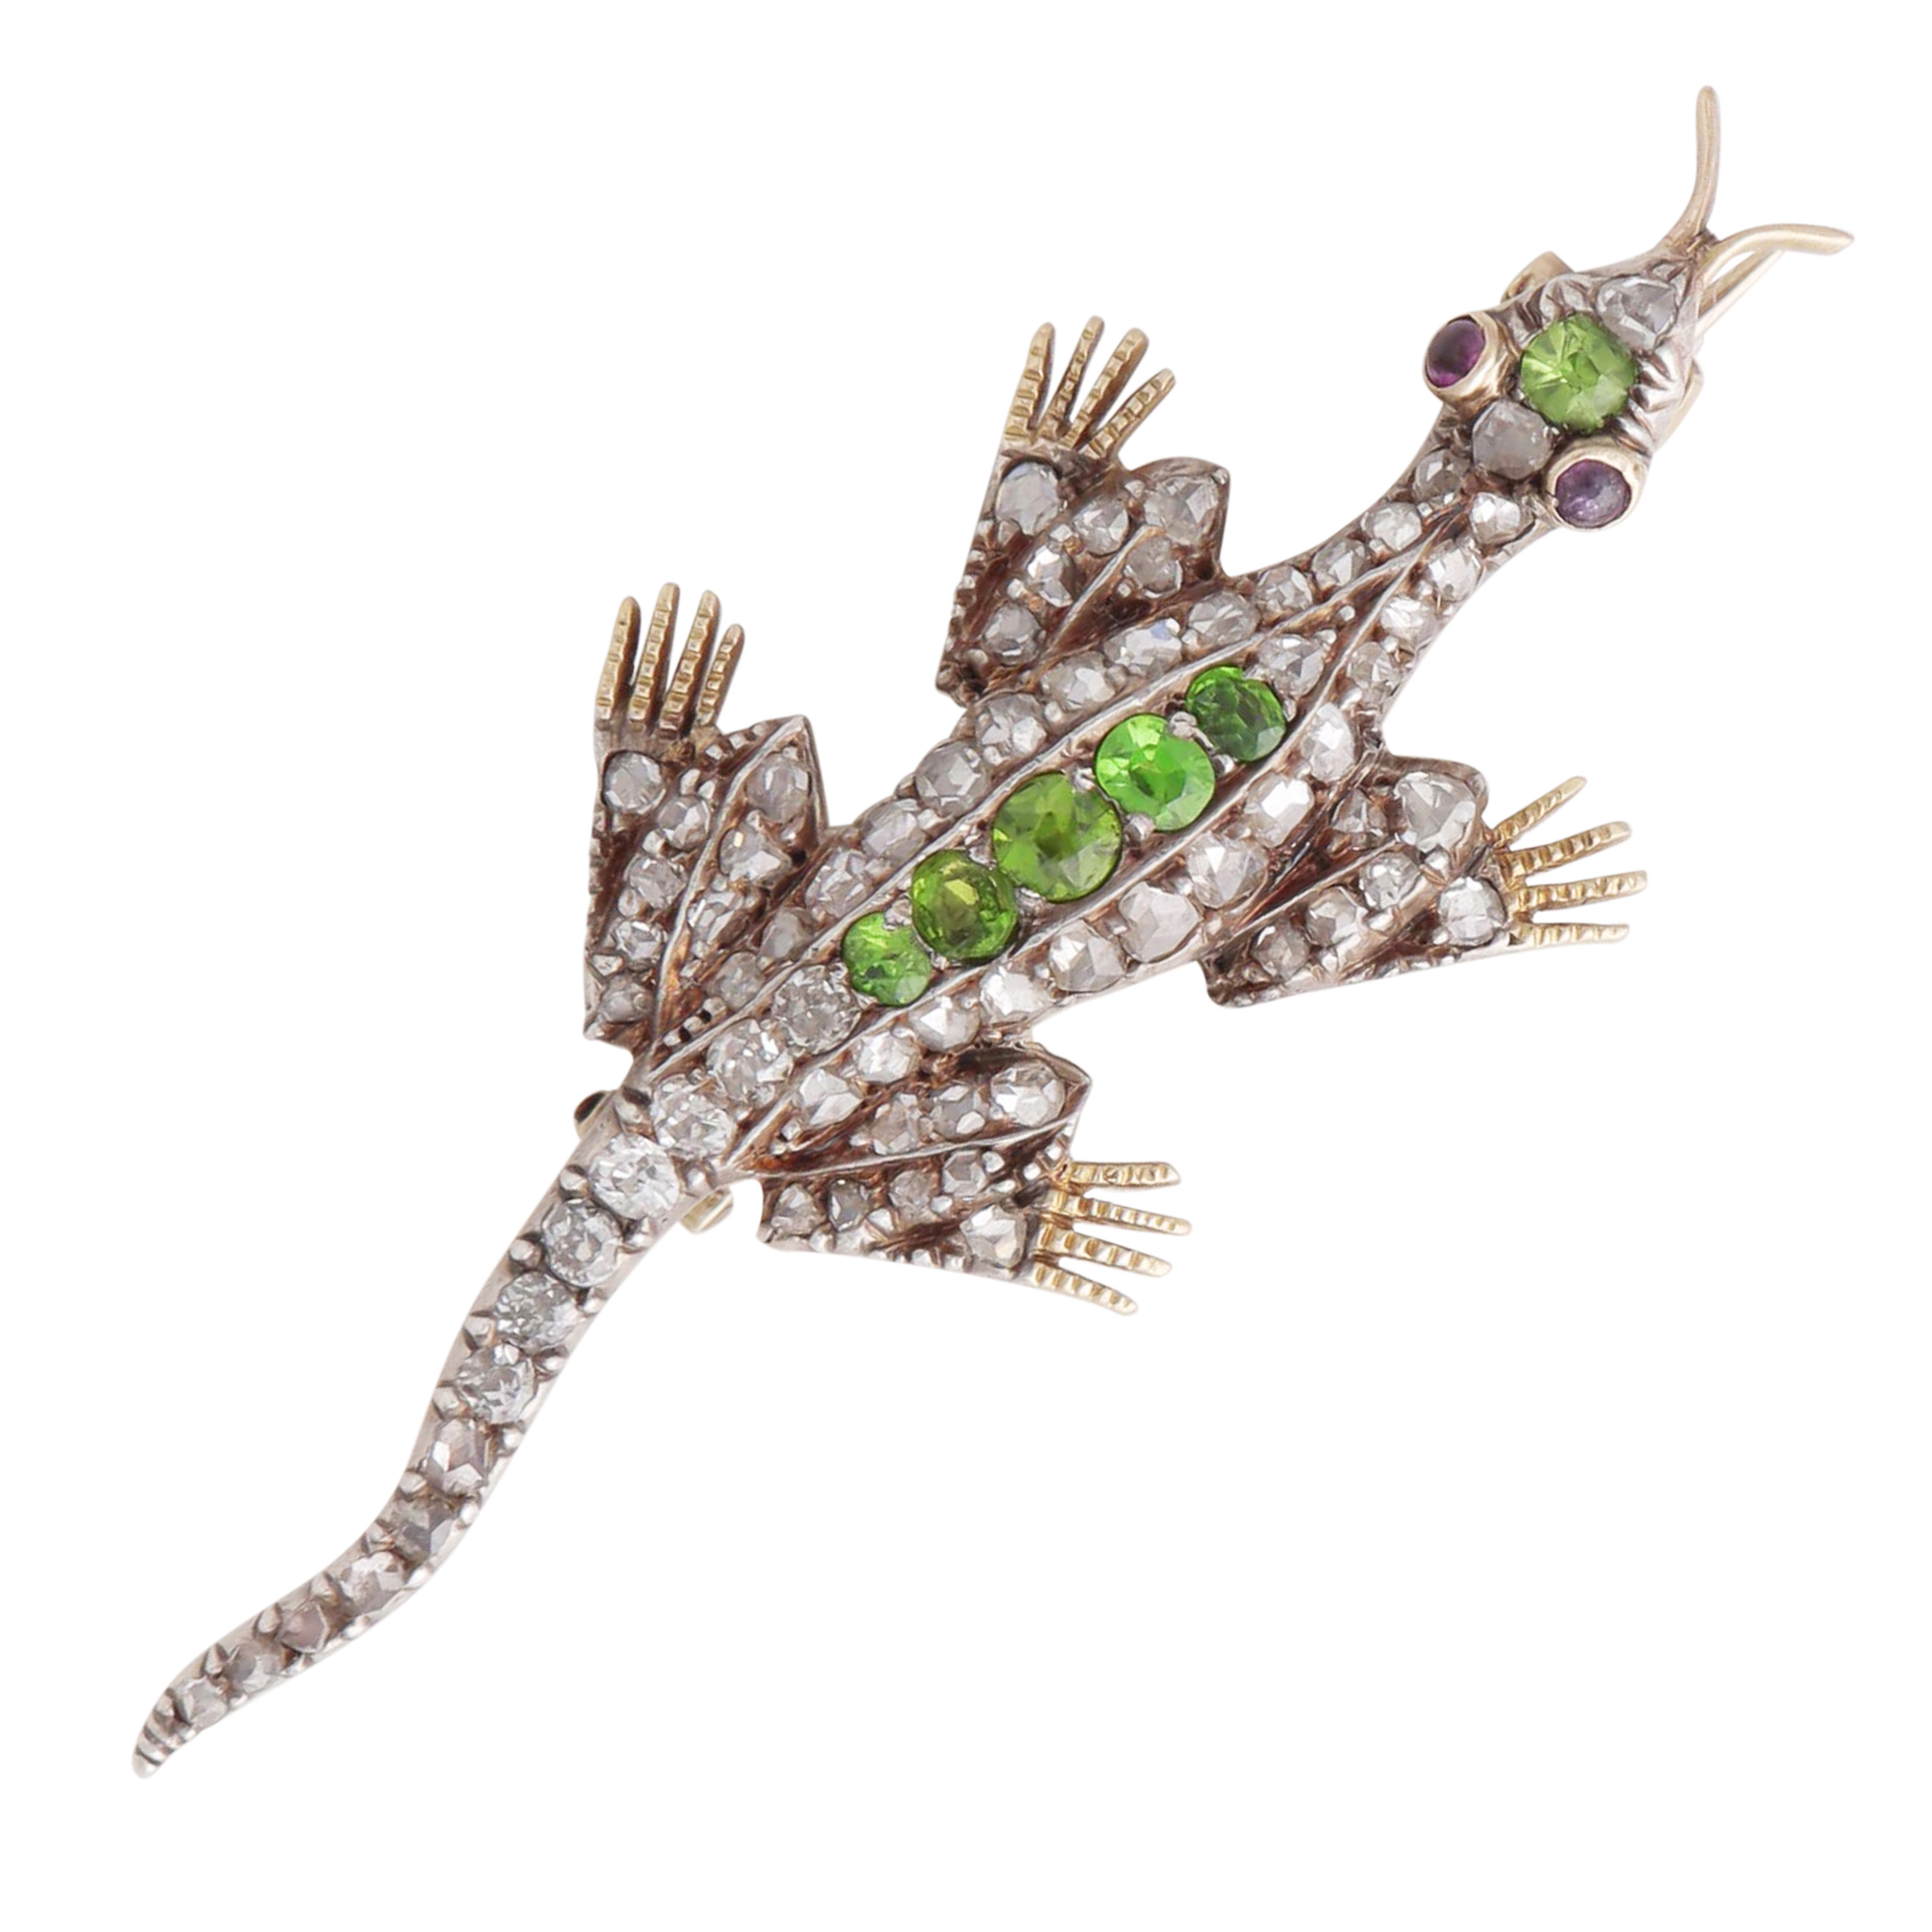 Los 48 - AN ANTIQUE DEMANTOID GARNET AND DIAMOND LIZARD BROOCH designed as a lizard, its body jewelled with a